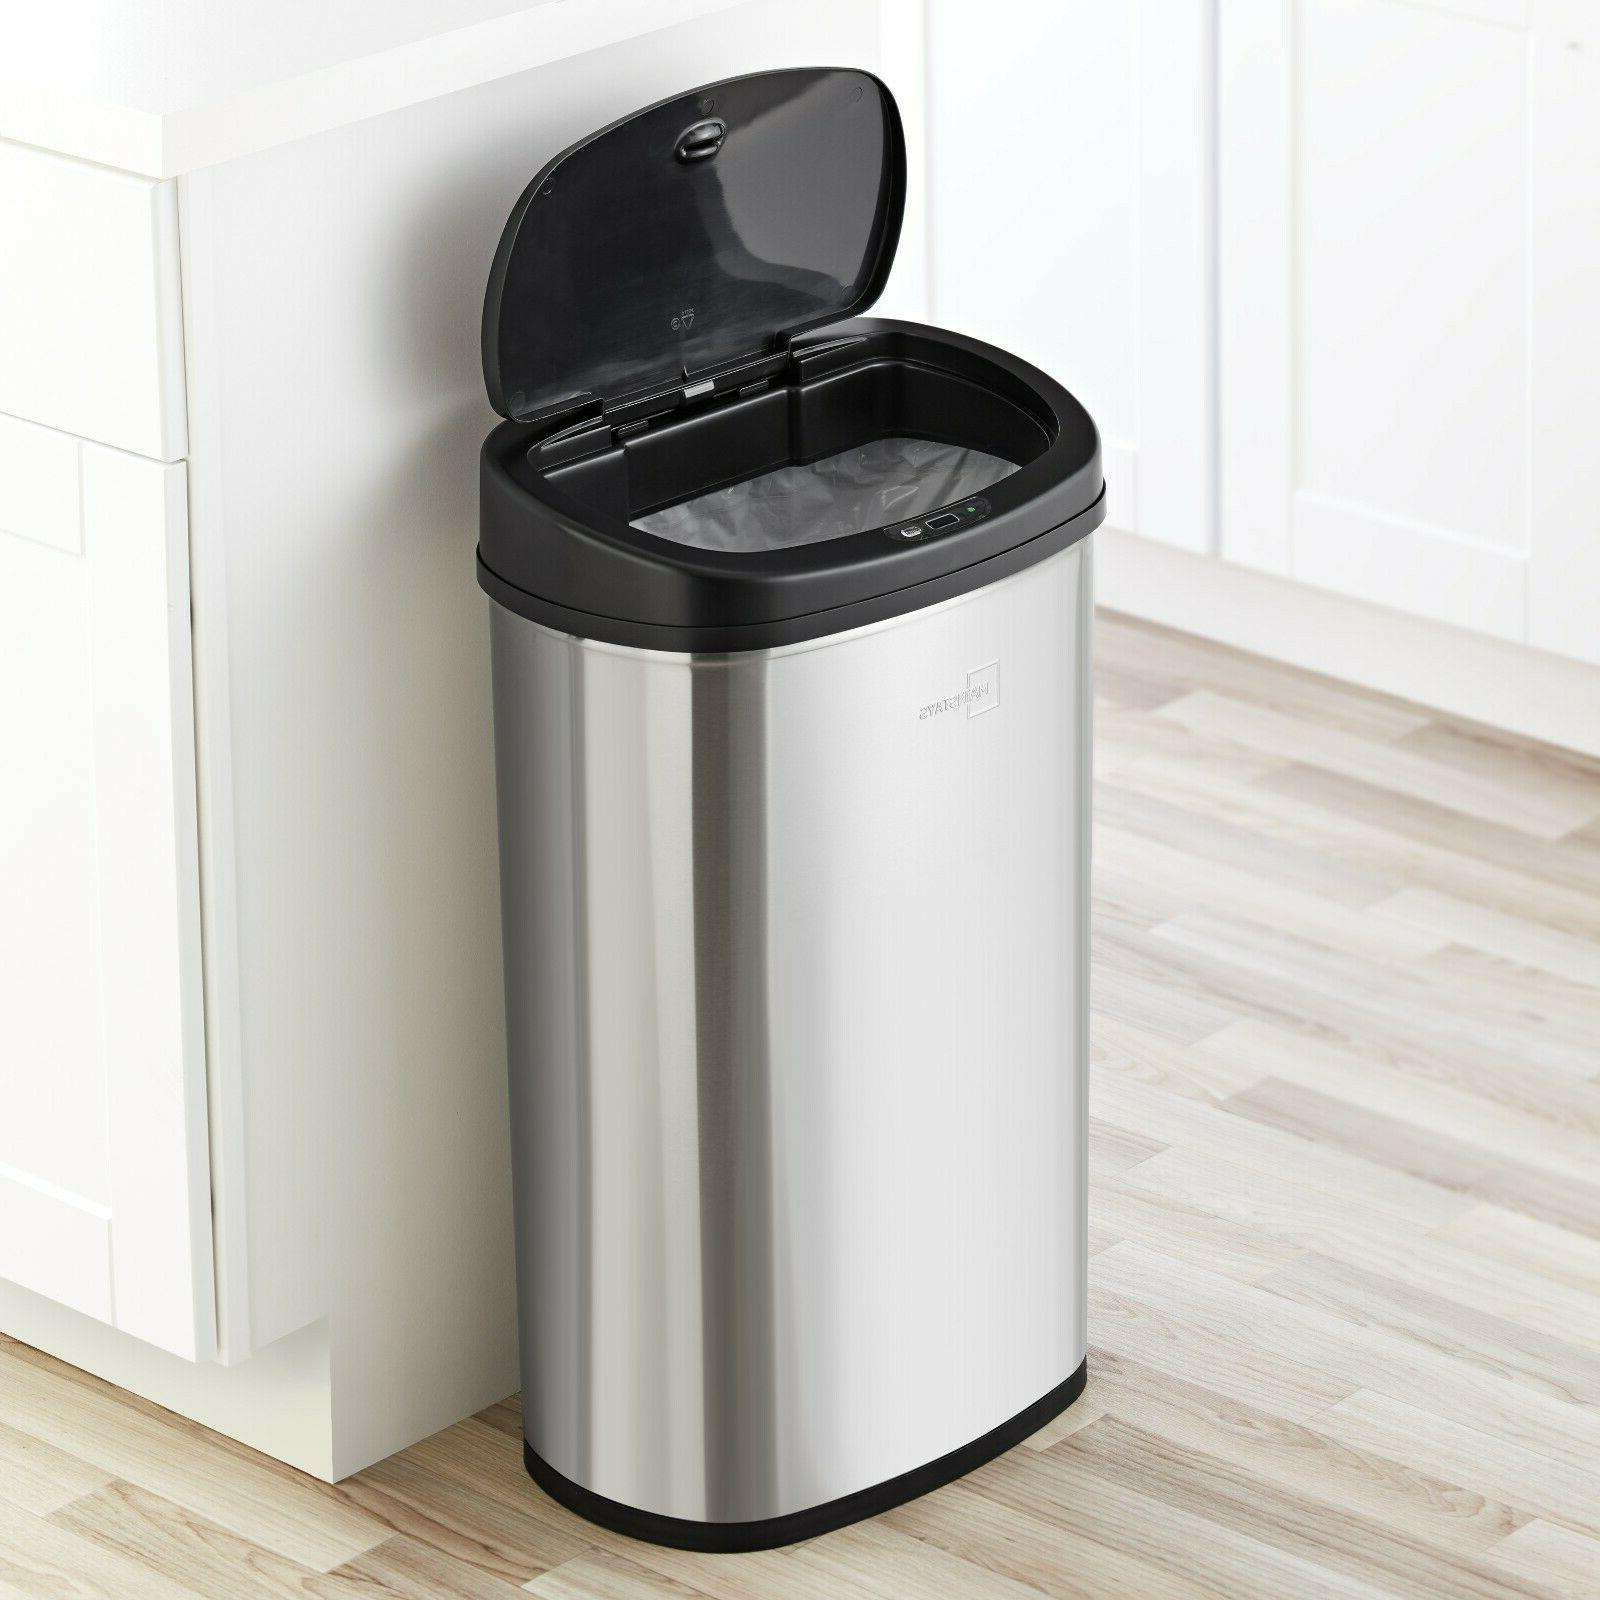 Motion Sensor Trash Can 13.2-Gallon Stainless Automatic Touc